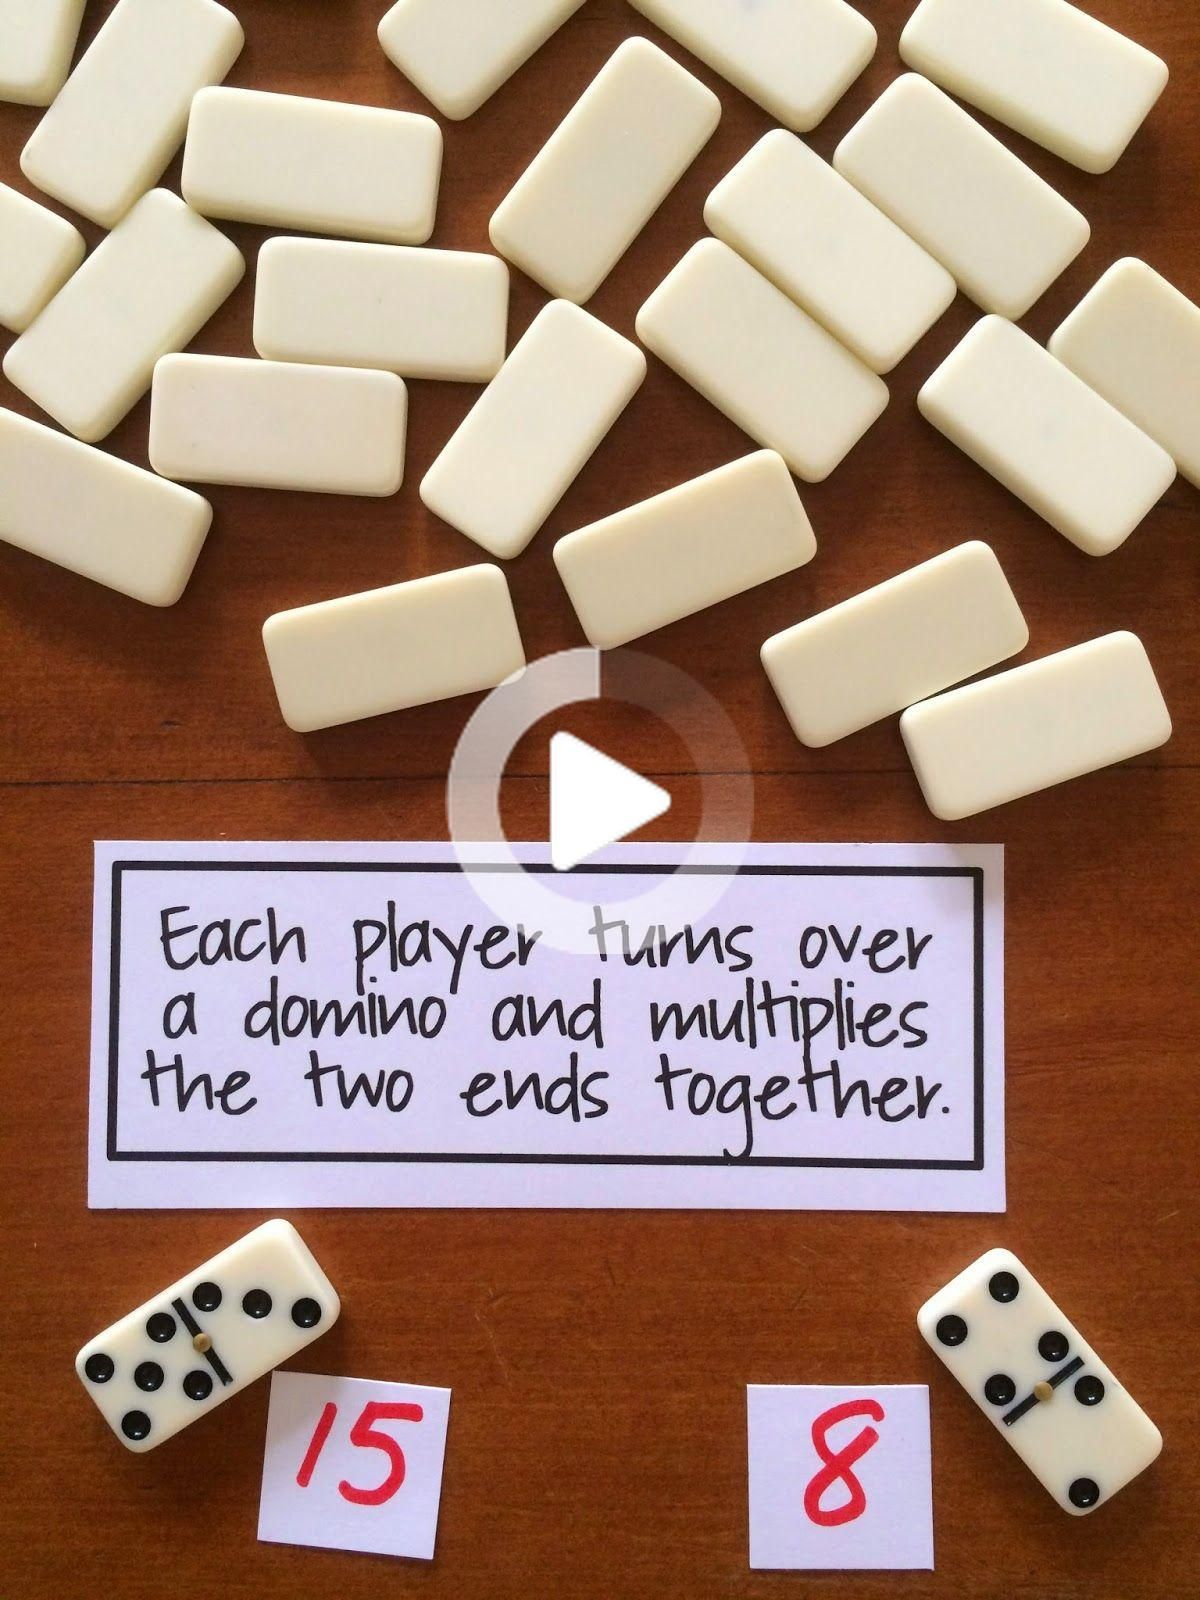 Fun Games 4 Learning Domino Math Games Dominoes Math Games Games 4 Learning Math Games [ 1600 x 1200 Pixel ]